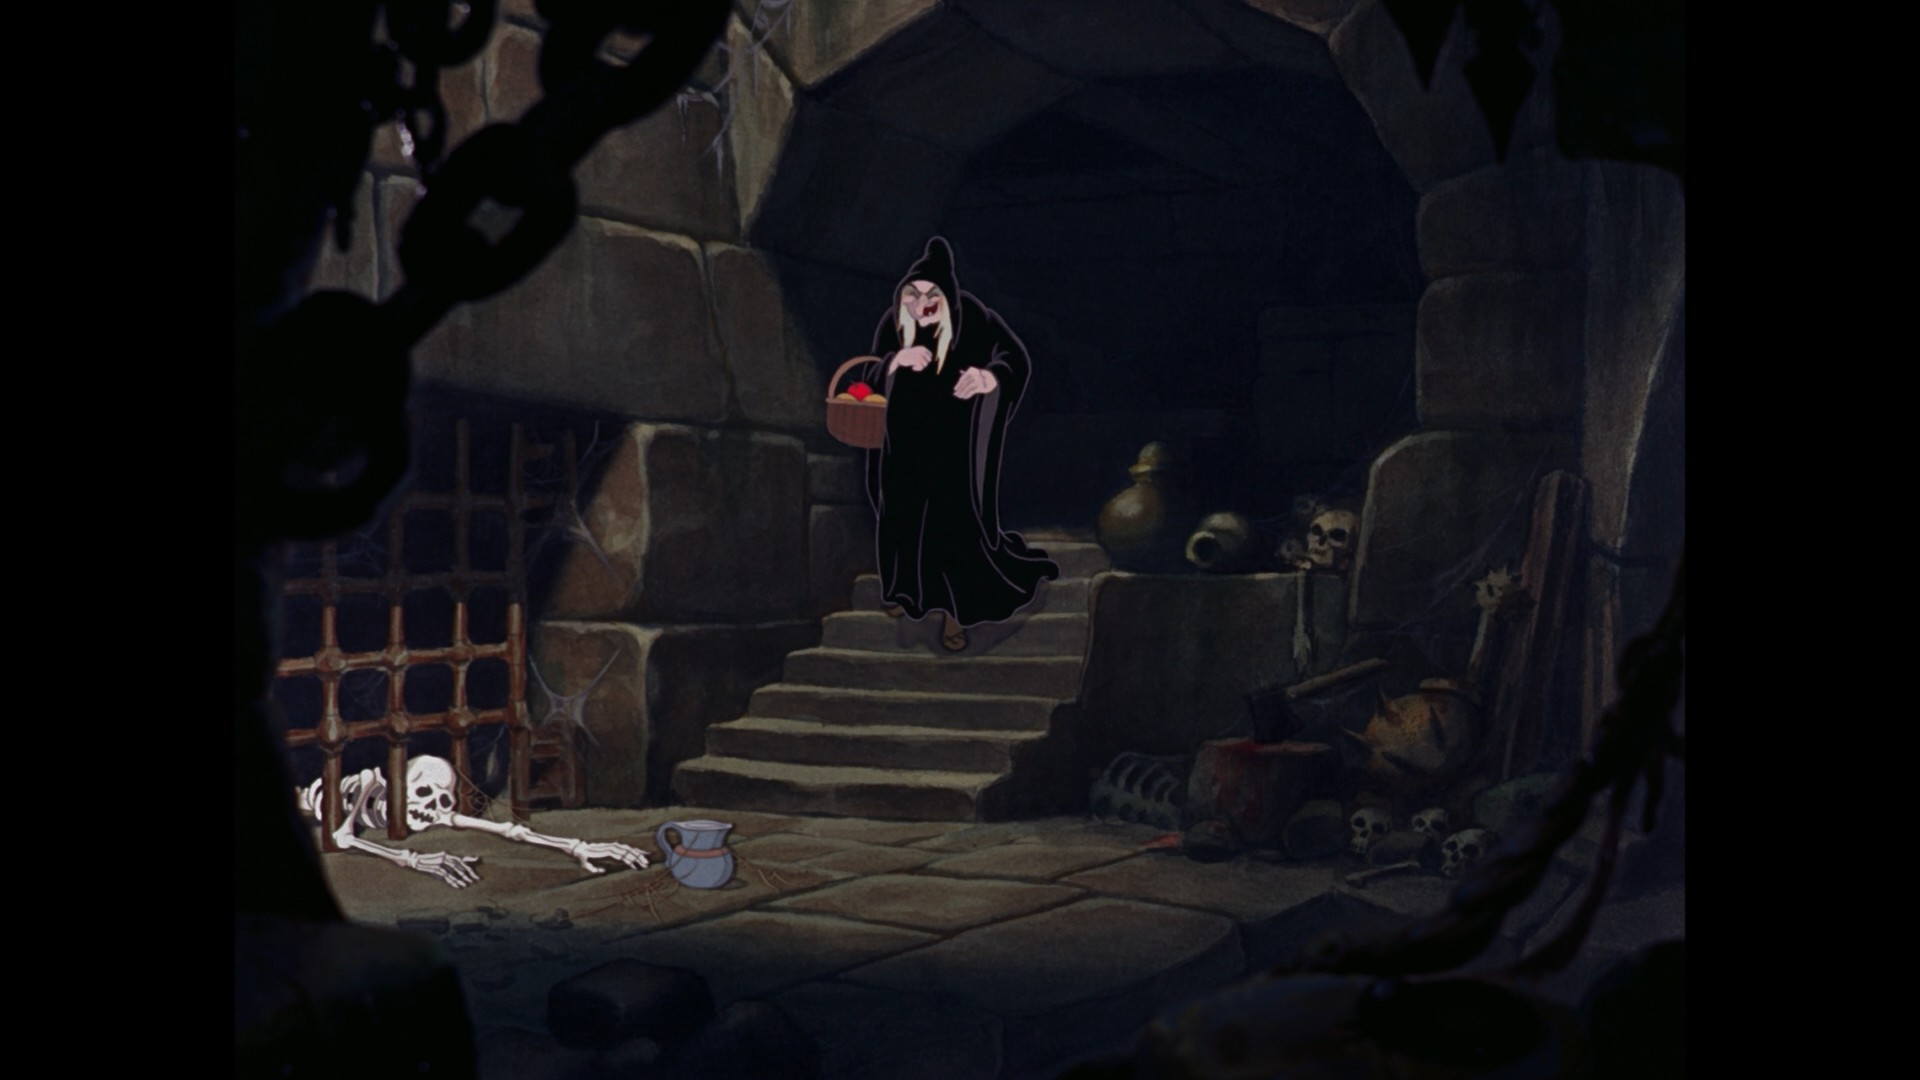 1920x1080 The queen's dungeon from Snow White. Painted with watercolor.